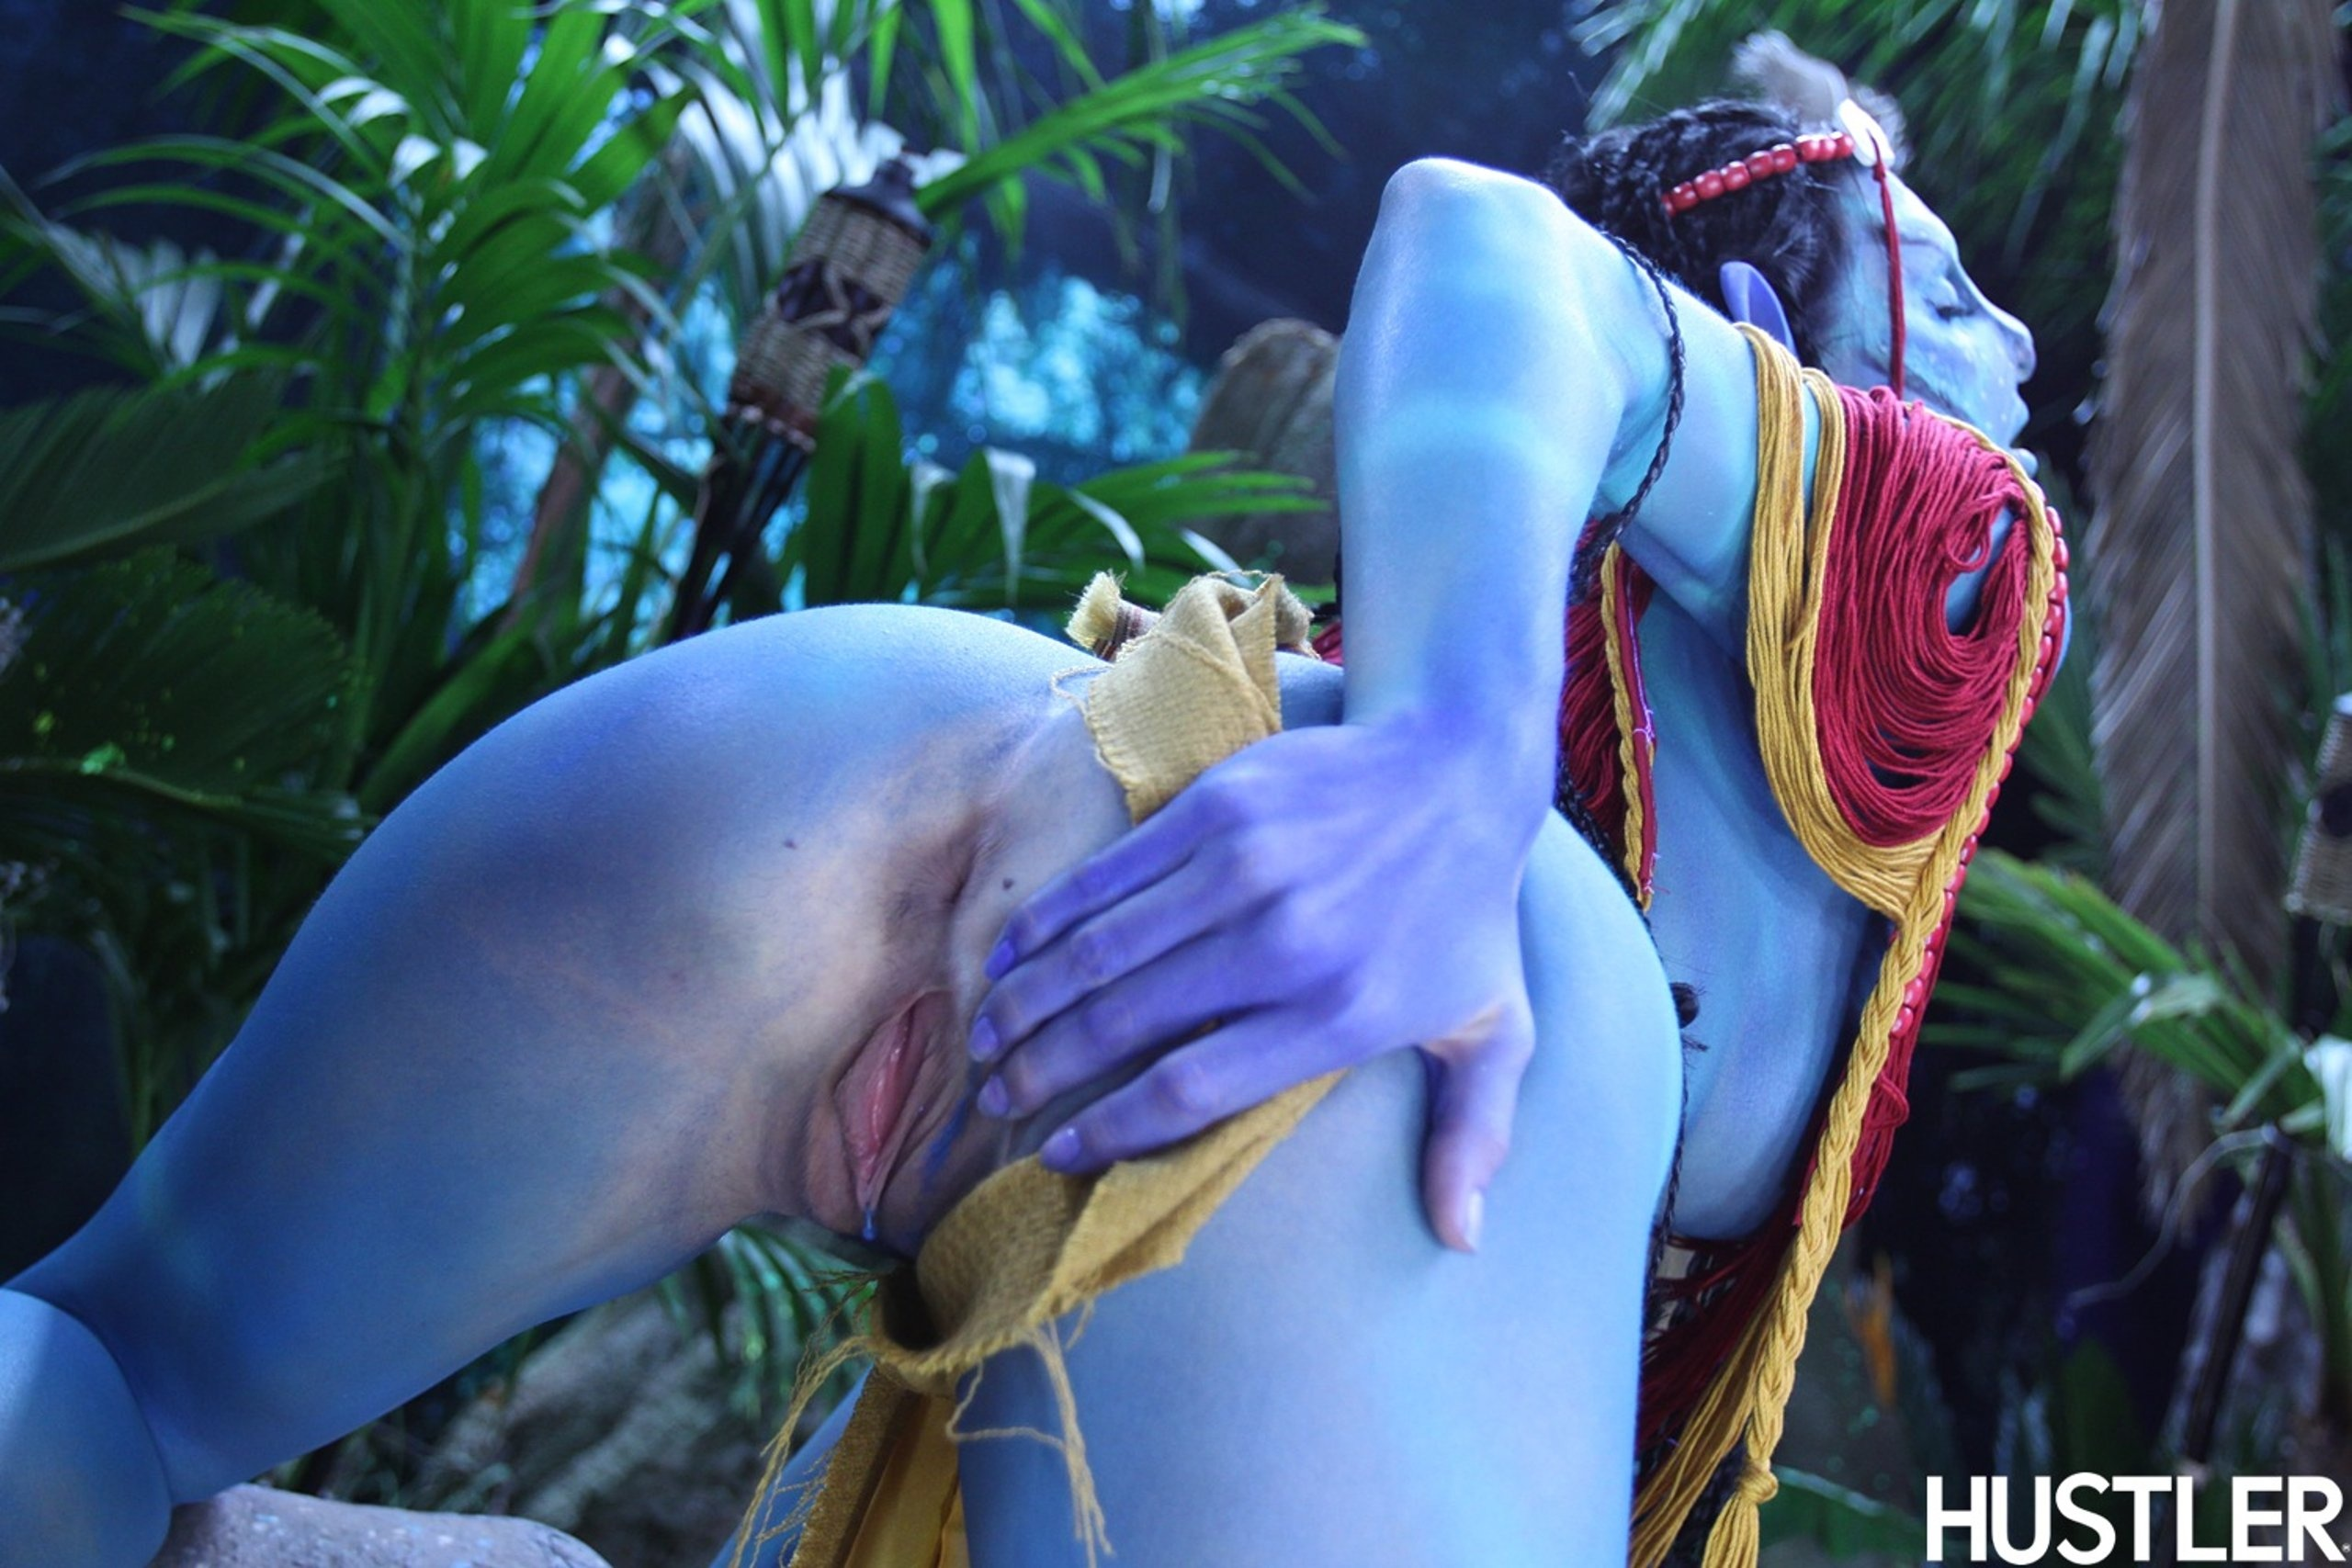 Magnificent Avtar sex pussy image for that